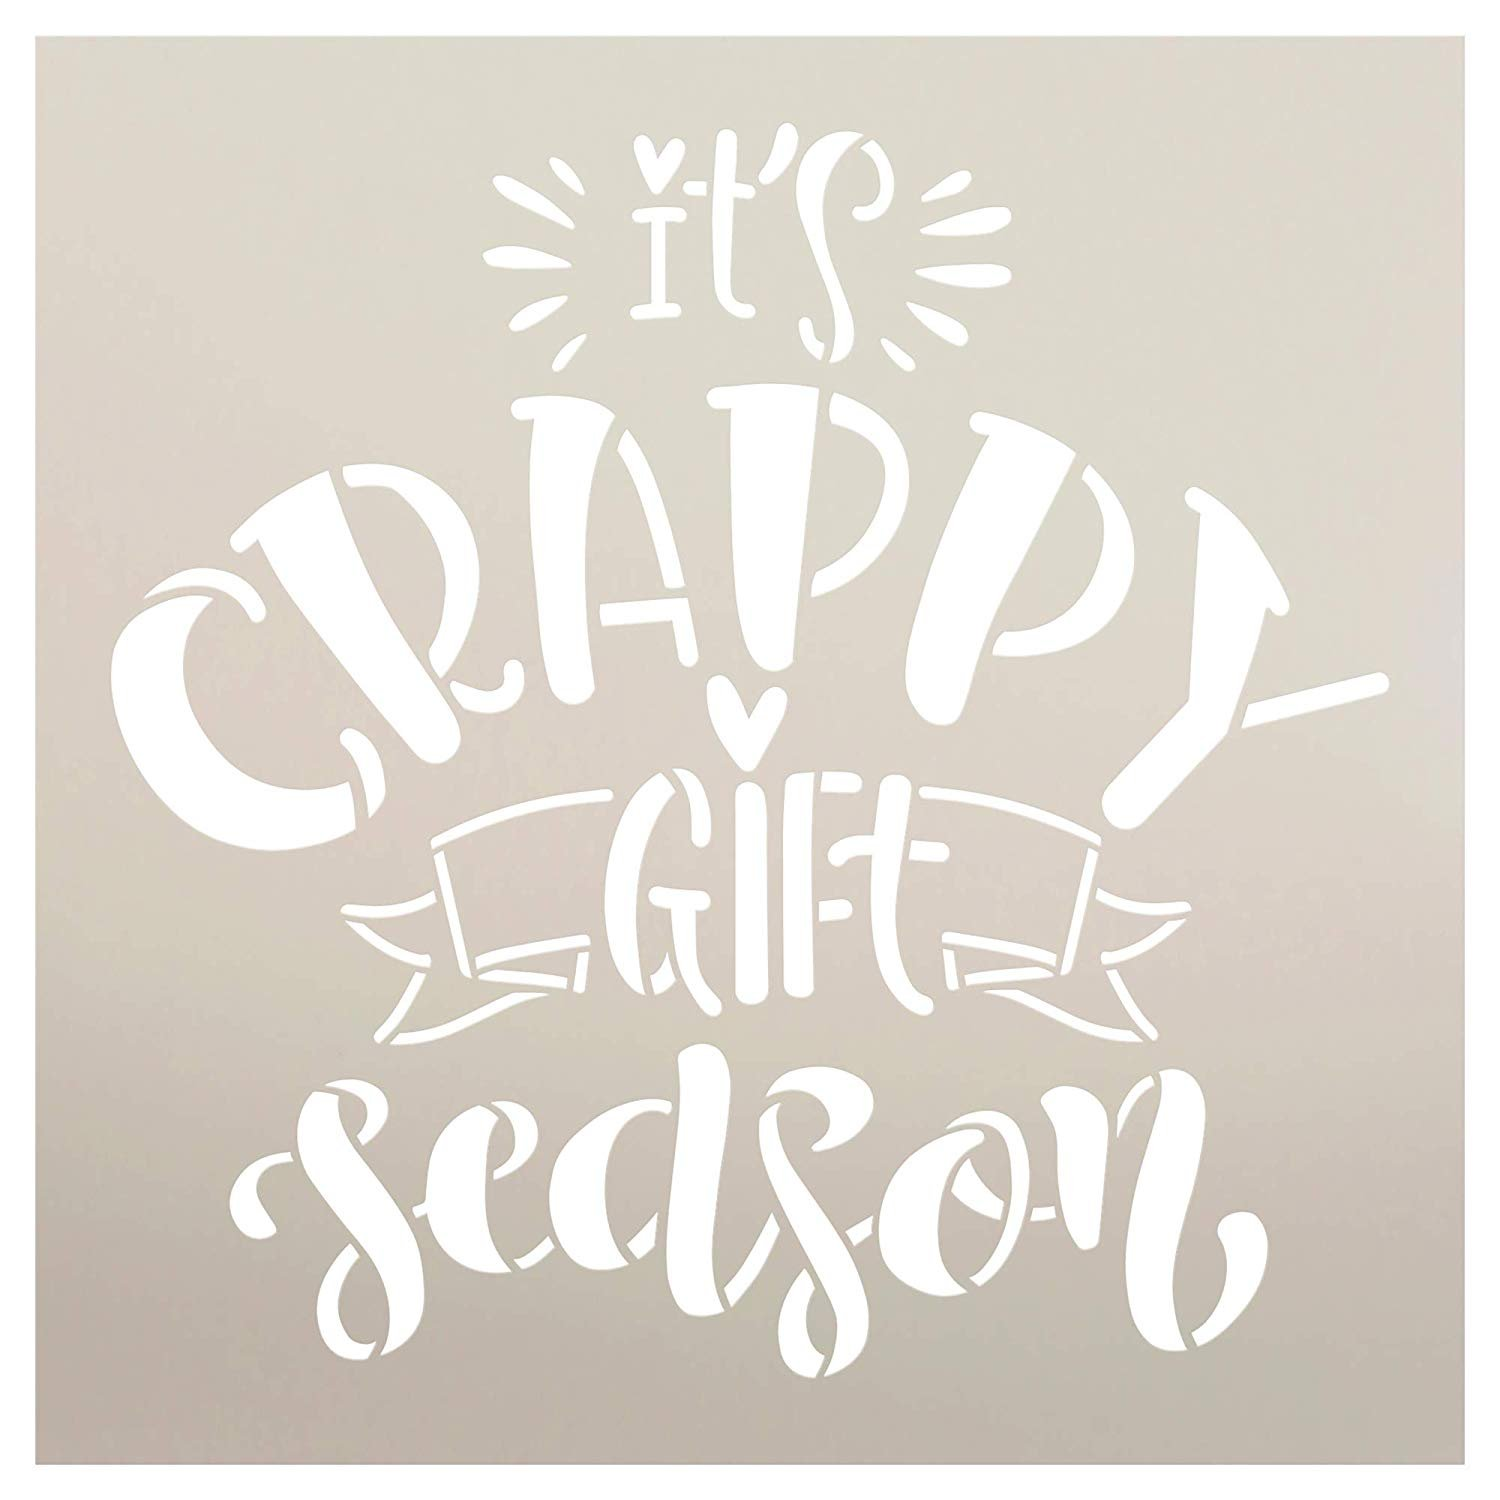 Crappy Gift Season Stencil by StudioR12 | DIY Fun Christmas Humor Home Decor | Embellished Holiday Script Word Art | Craft & Paint Wood Signs | Reusable Mylar Template | Select Size